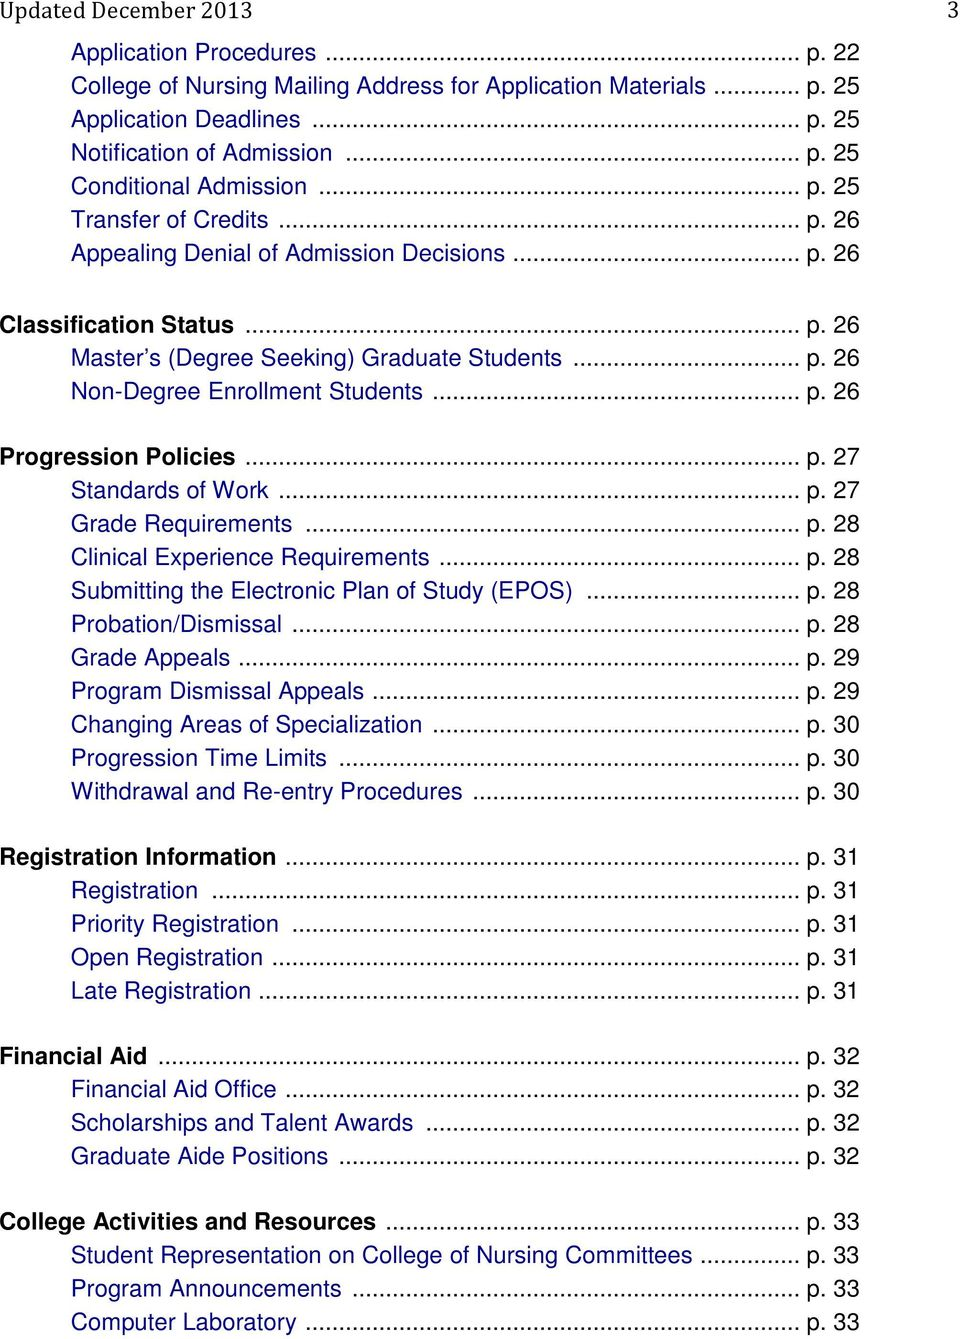 .. p. 26 Progression Policies... p. 27 Standards of Work... p. 27 Grade Requirements... p. 28 Clinical Experience Requirements... p. 28 Submitting the Electronic Plan of Study (EPOS)... p. 28 Probation/Dismissal.